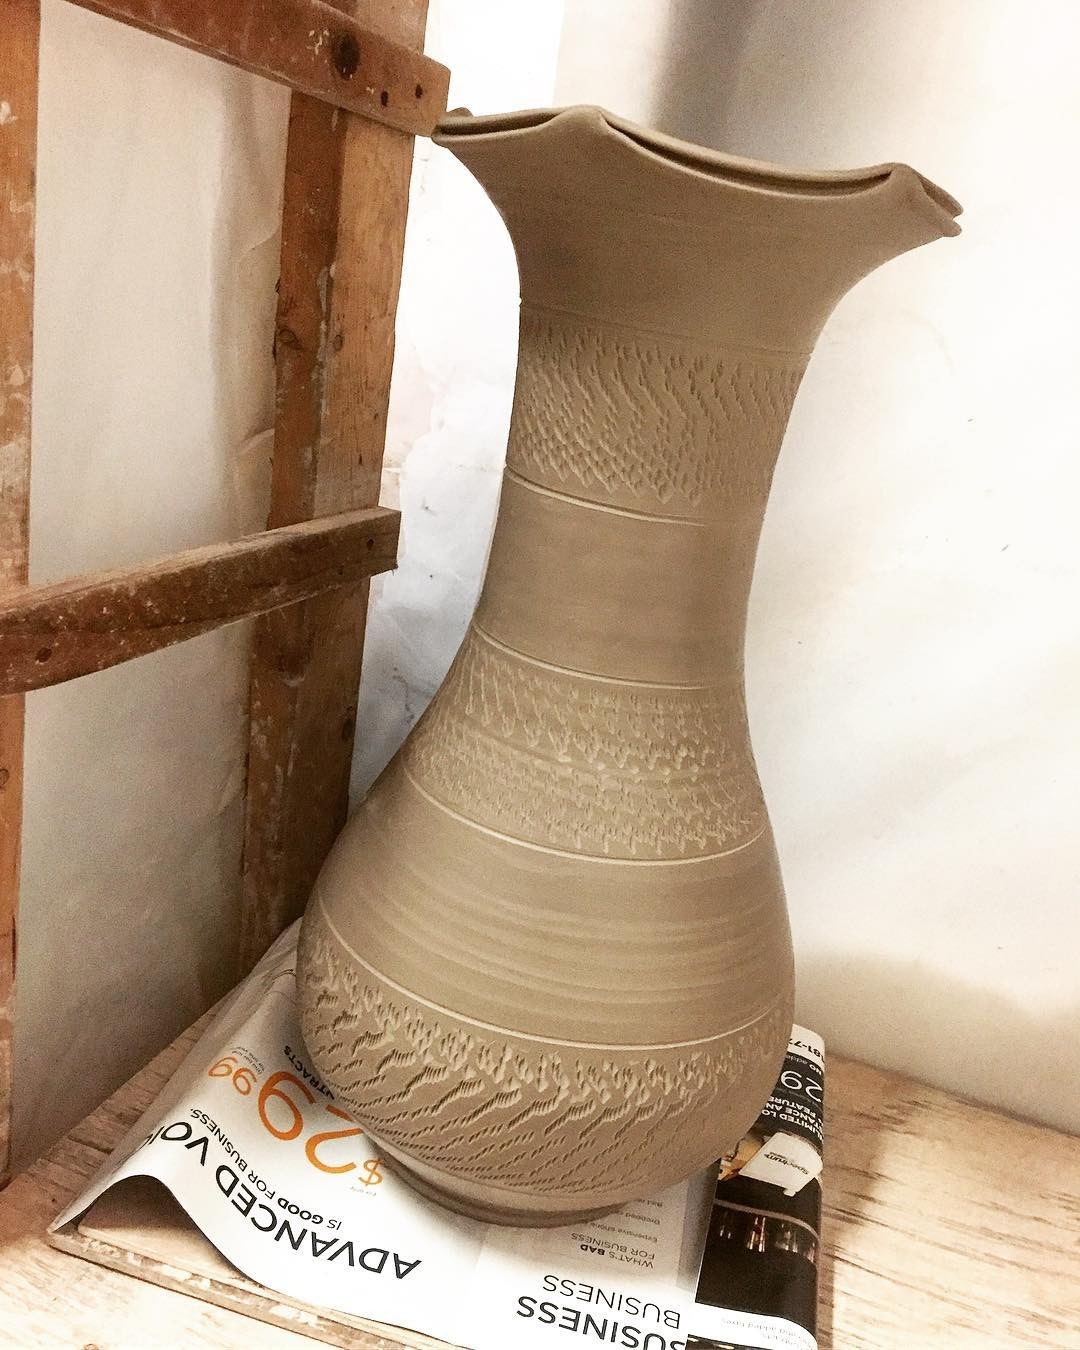 bjorn wiinblad vase of porcelainvase hash tags deskgram regarding she is all trimmed and finished now for her to dry it wasn